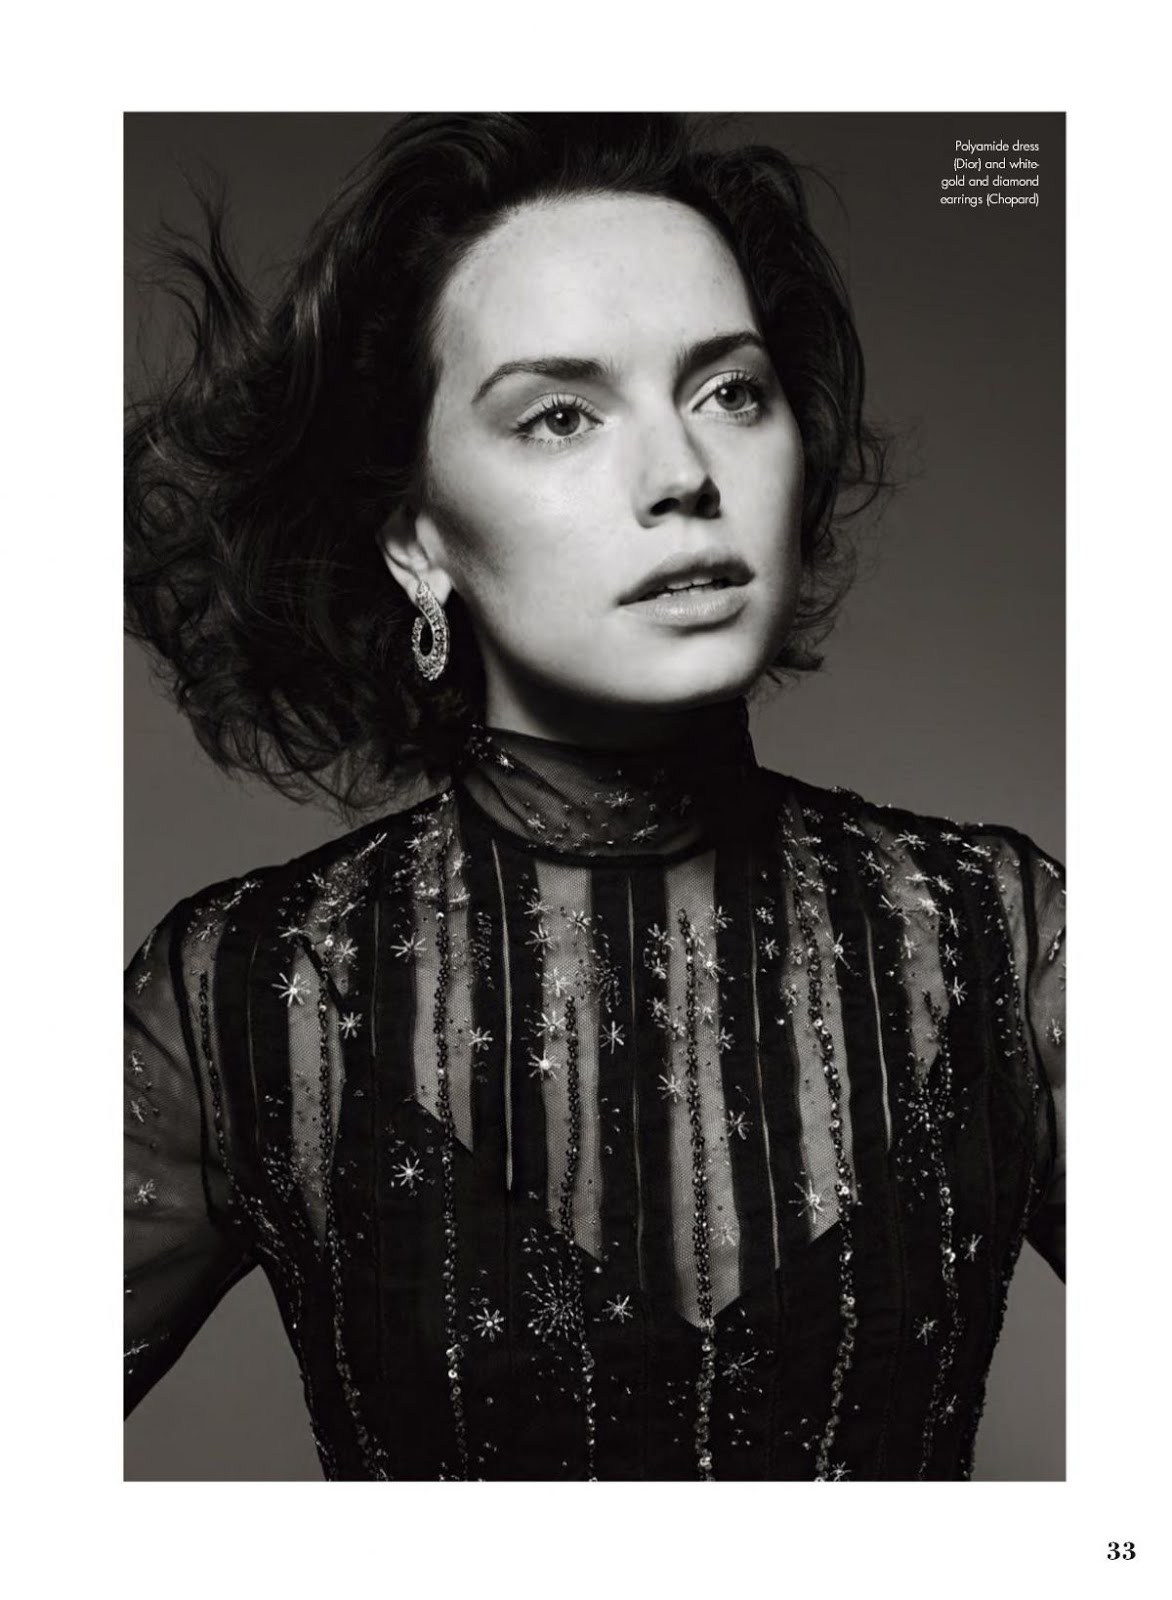 Daisy Ridley In Elle Magazine Canada February 2018 issue